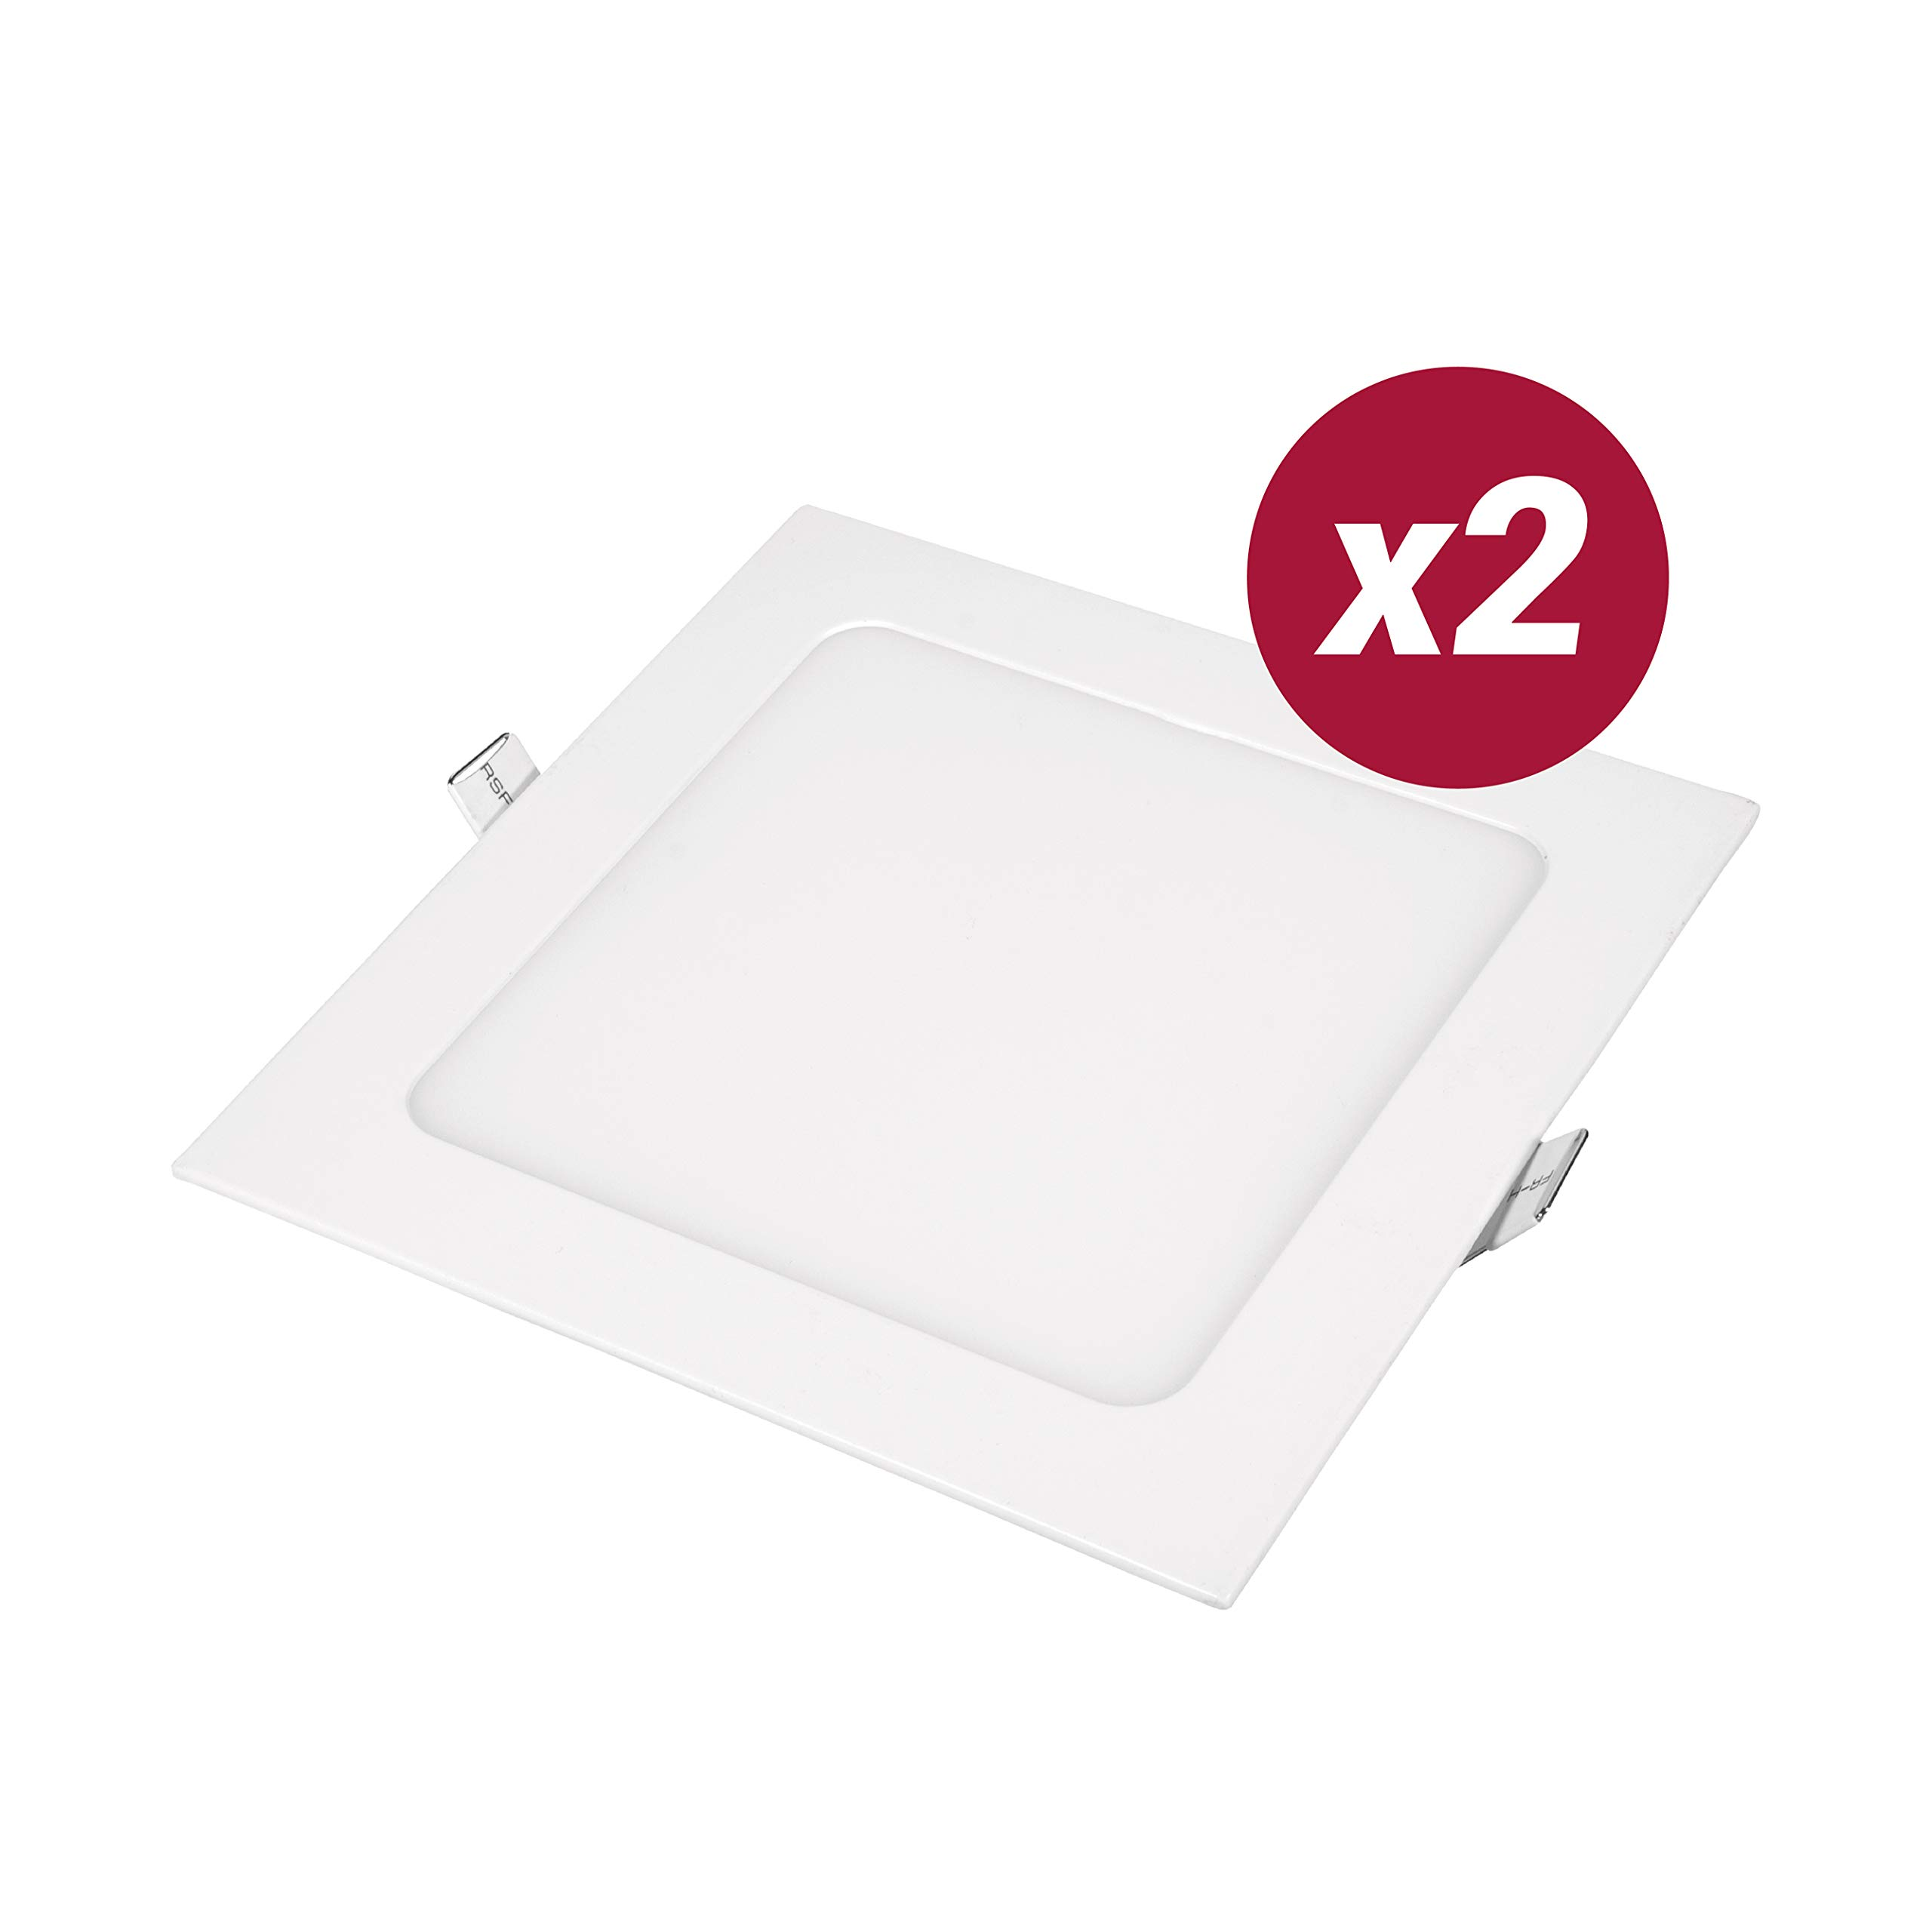 POPP- Pack 2 Downlight LED Extraplano Cuadrado Blanco,chip OSRAM Iluminacion LED Plafón de